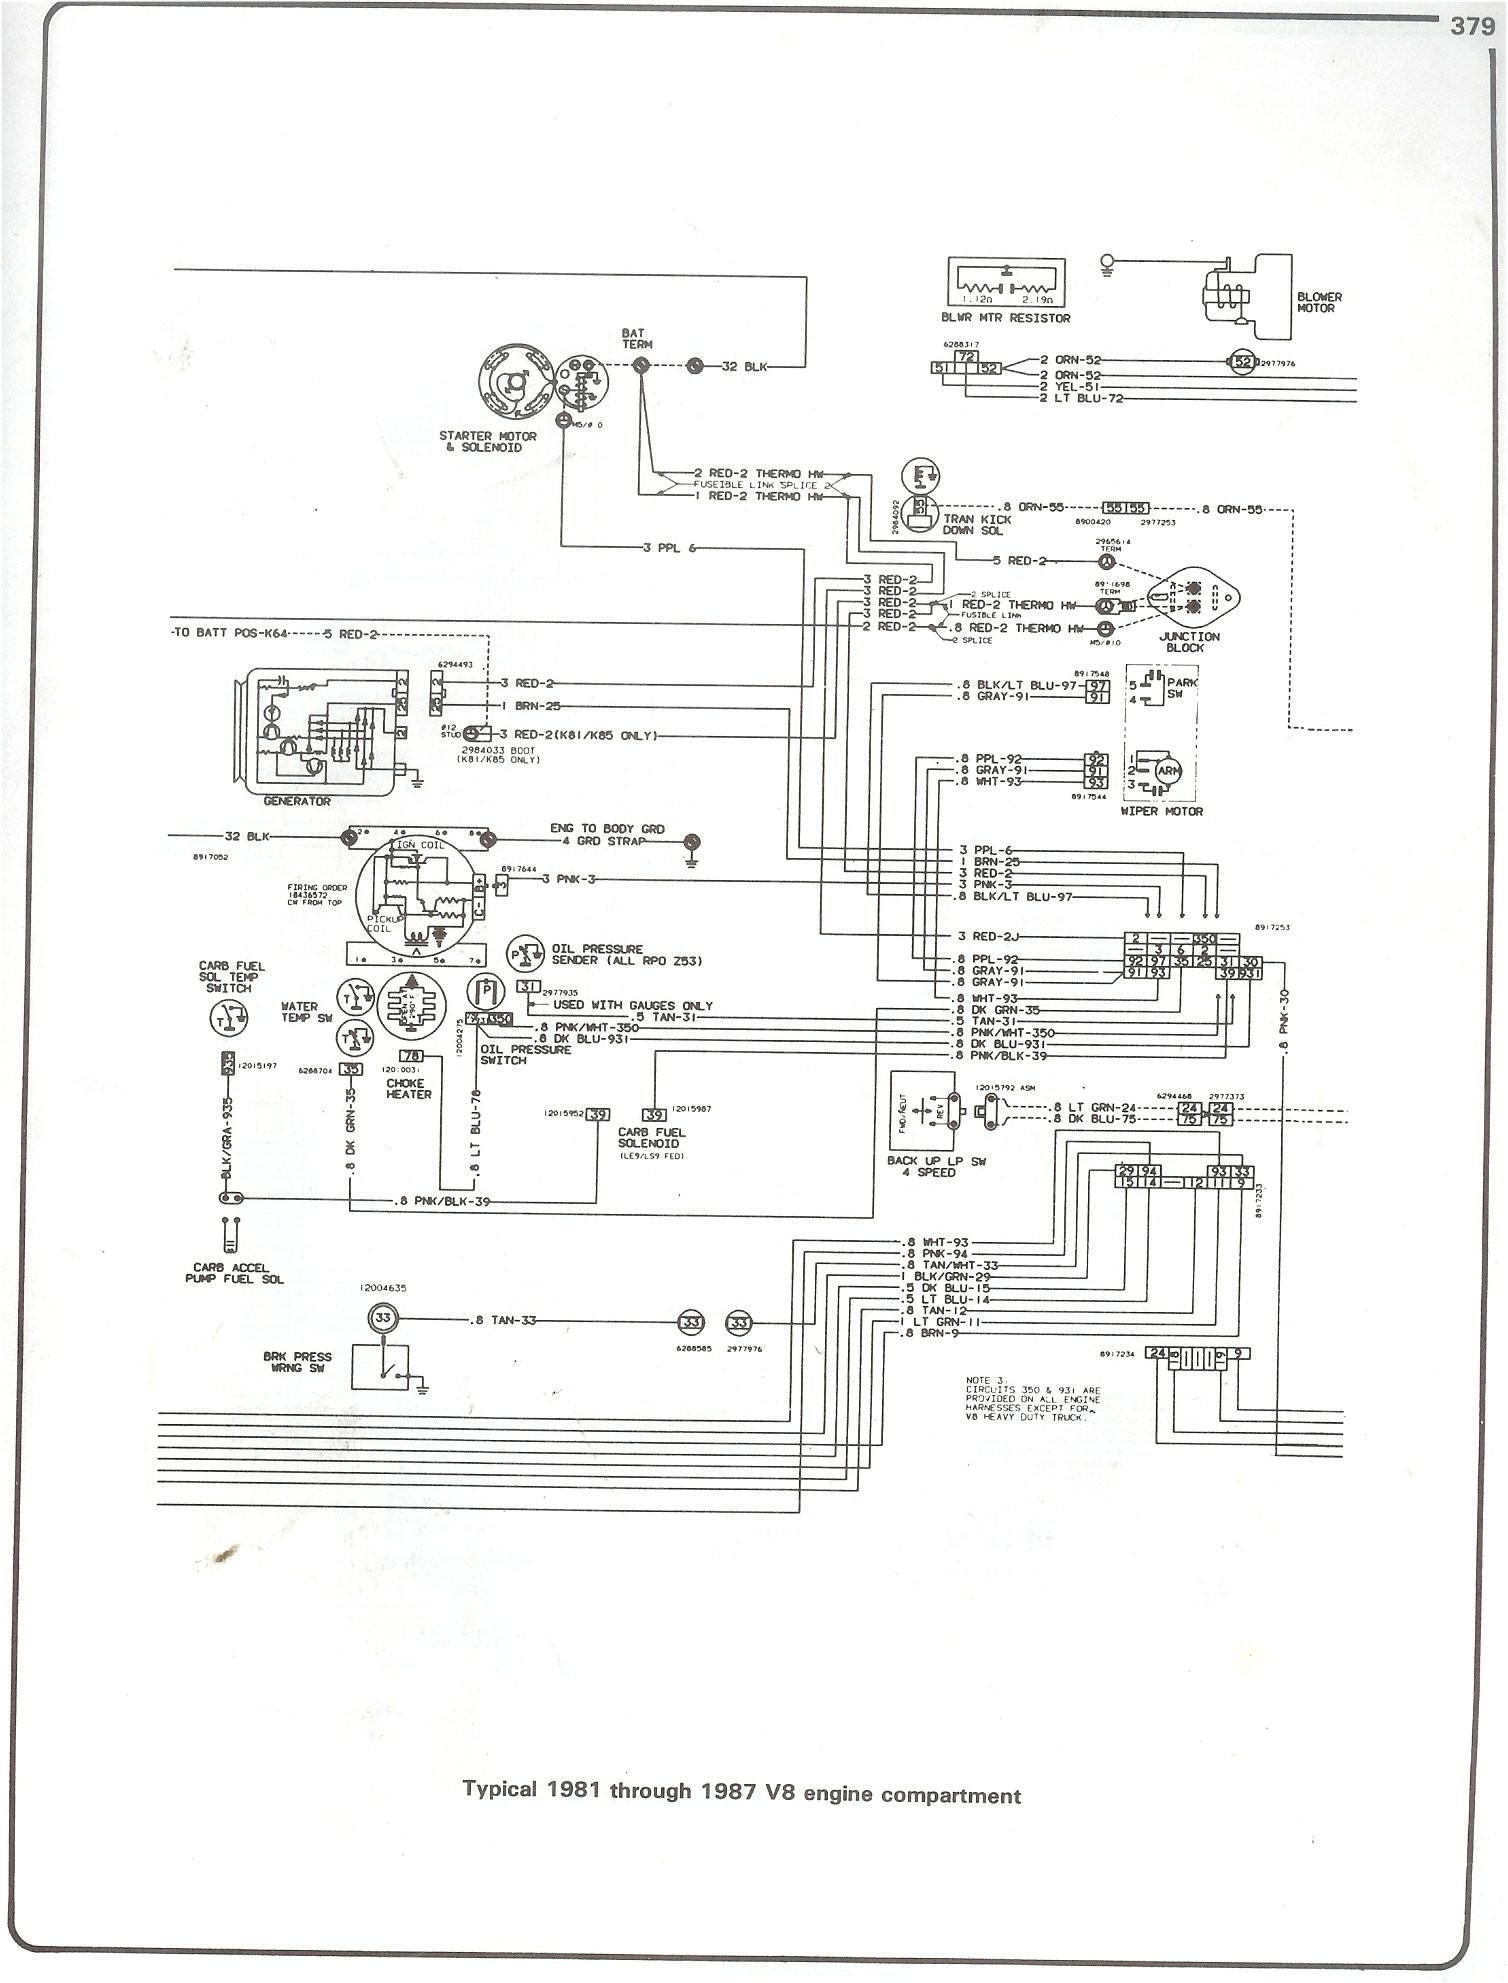 1983 Chevy Truck Wiring Diagram Wiring 79master 1of9 for 79 Chevy Truck  Diagram Wiring Diagram Of